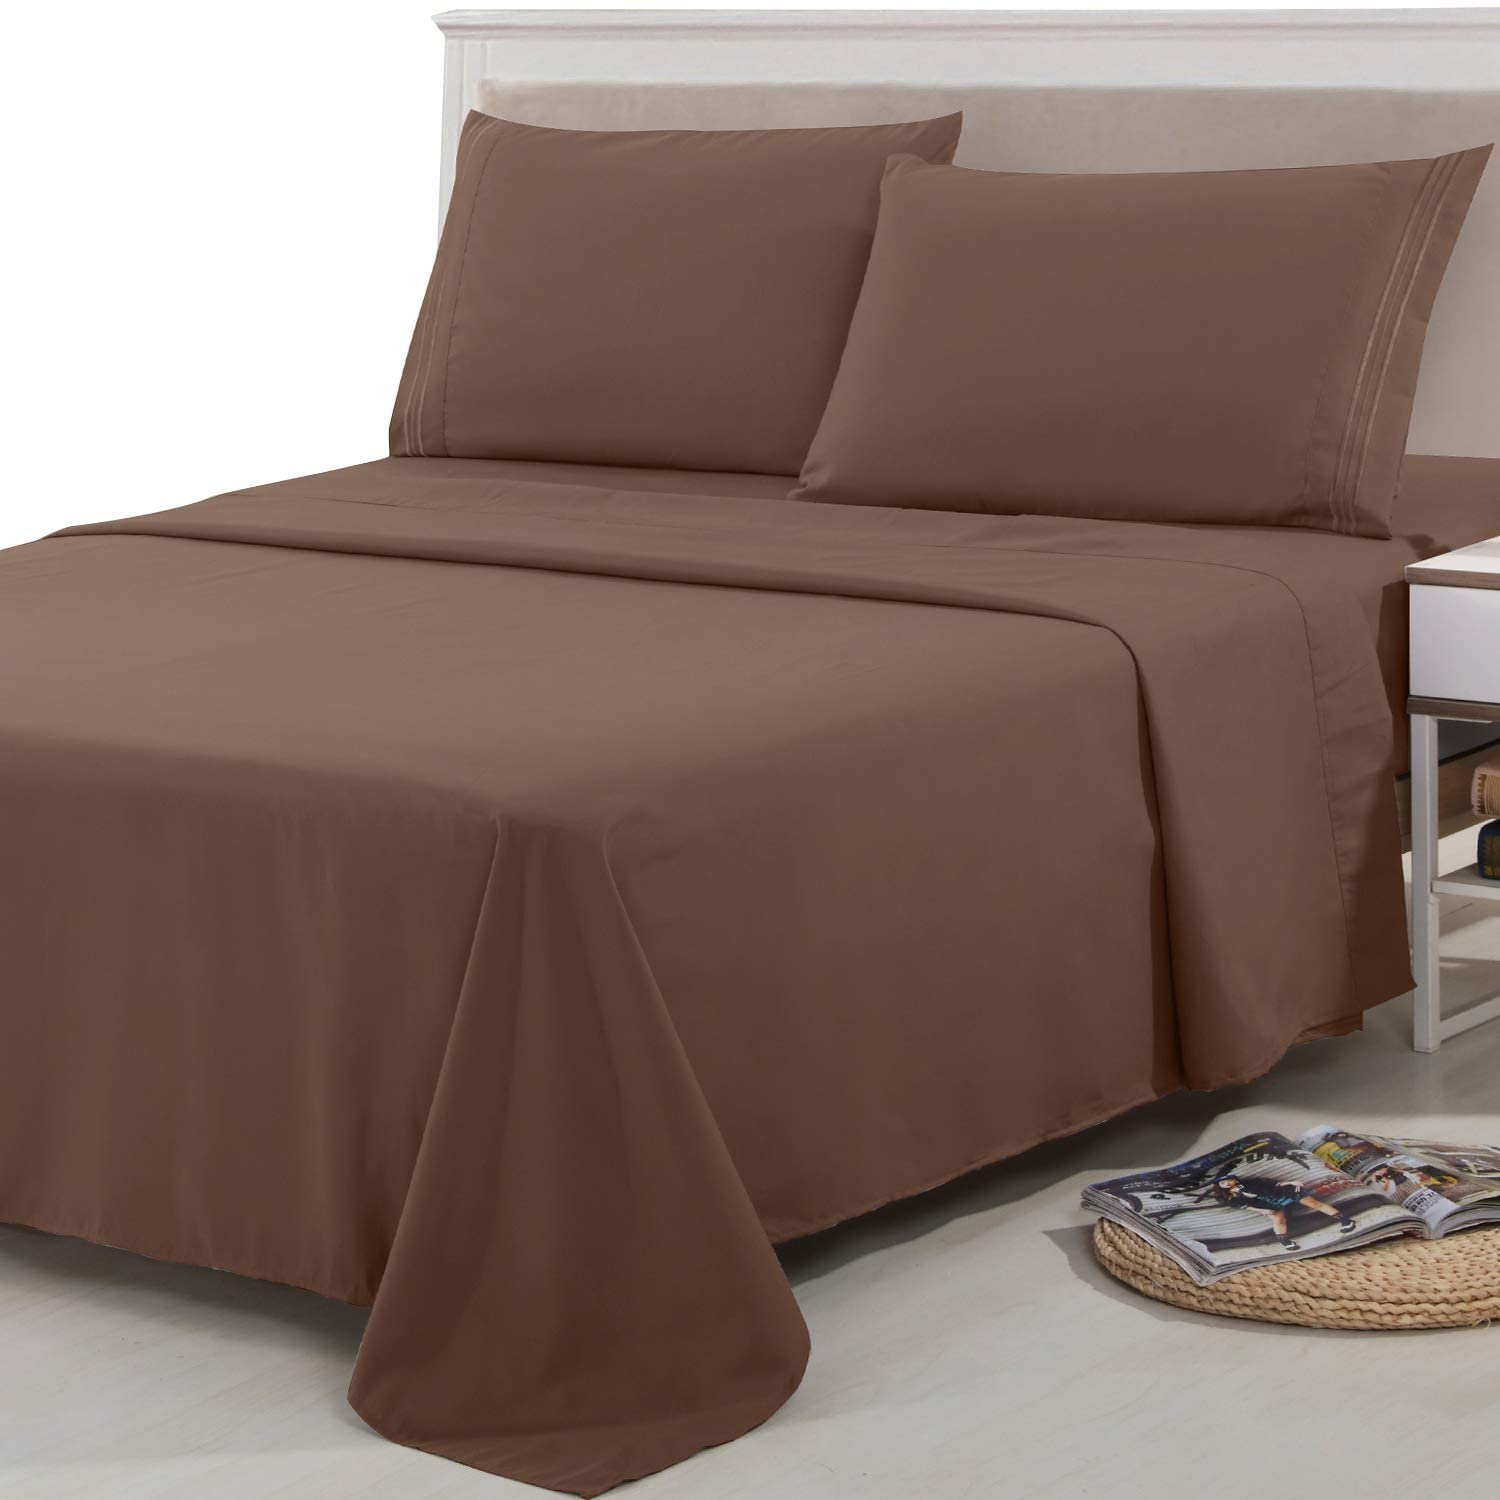 Lux Decor Collection Bed Sheet Set - Brushed Microfiber 1800 Bedding - Wrinkle, Stain and Fade Resistant - Hypoallergenic - 4 Piece (King,Embroidery Chocolate )